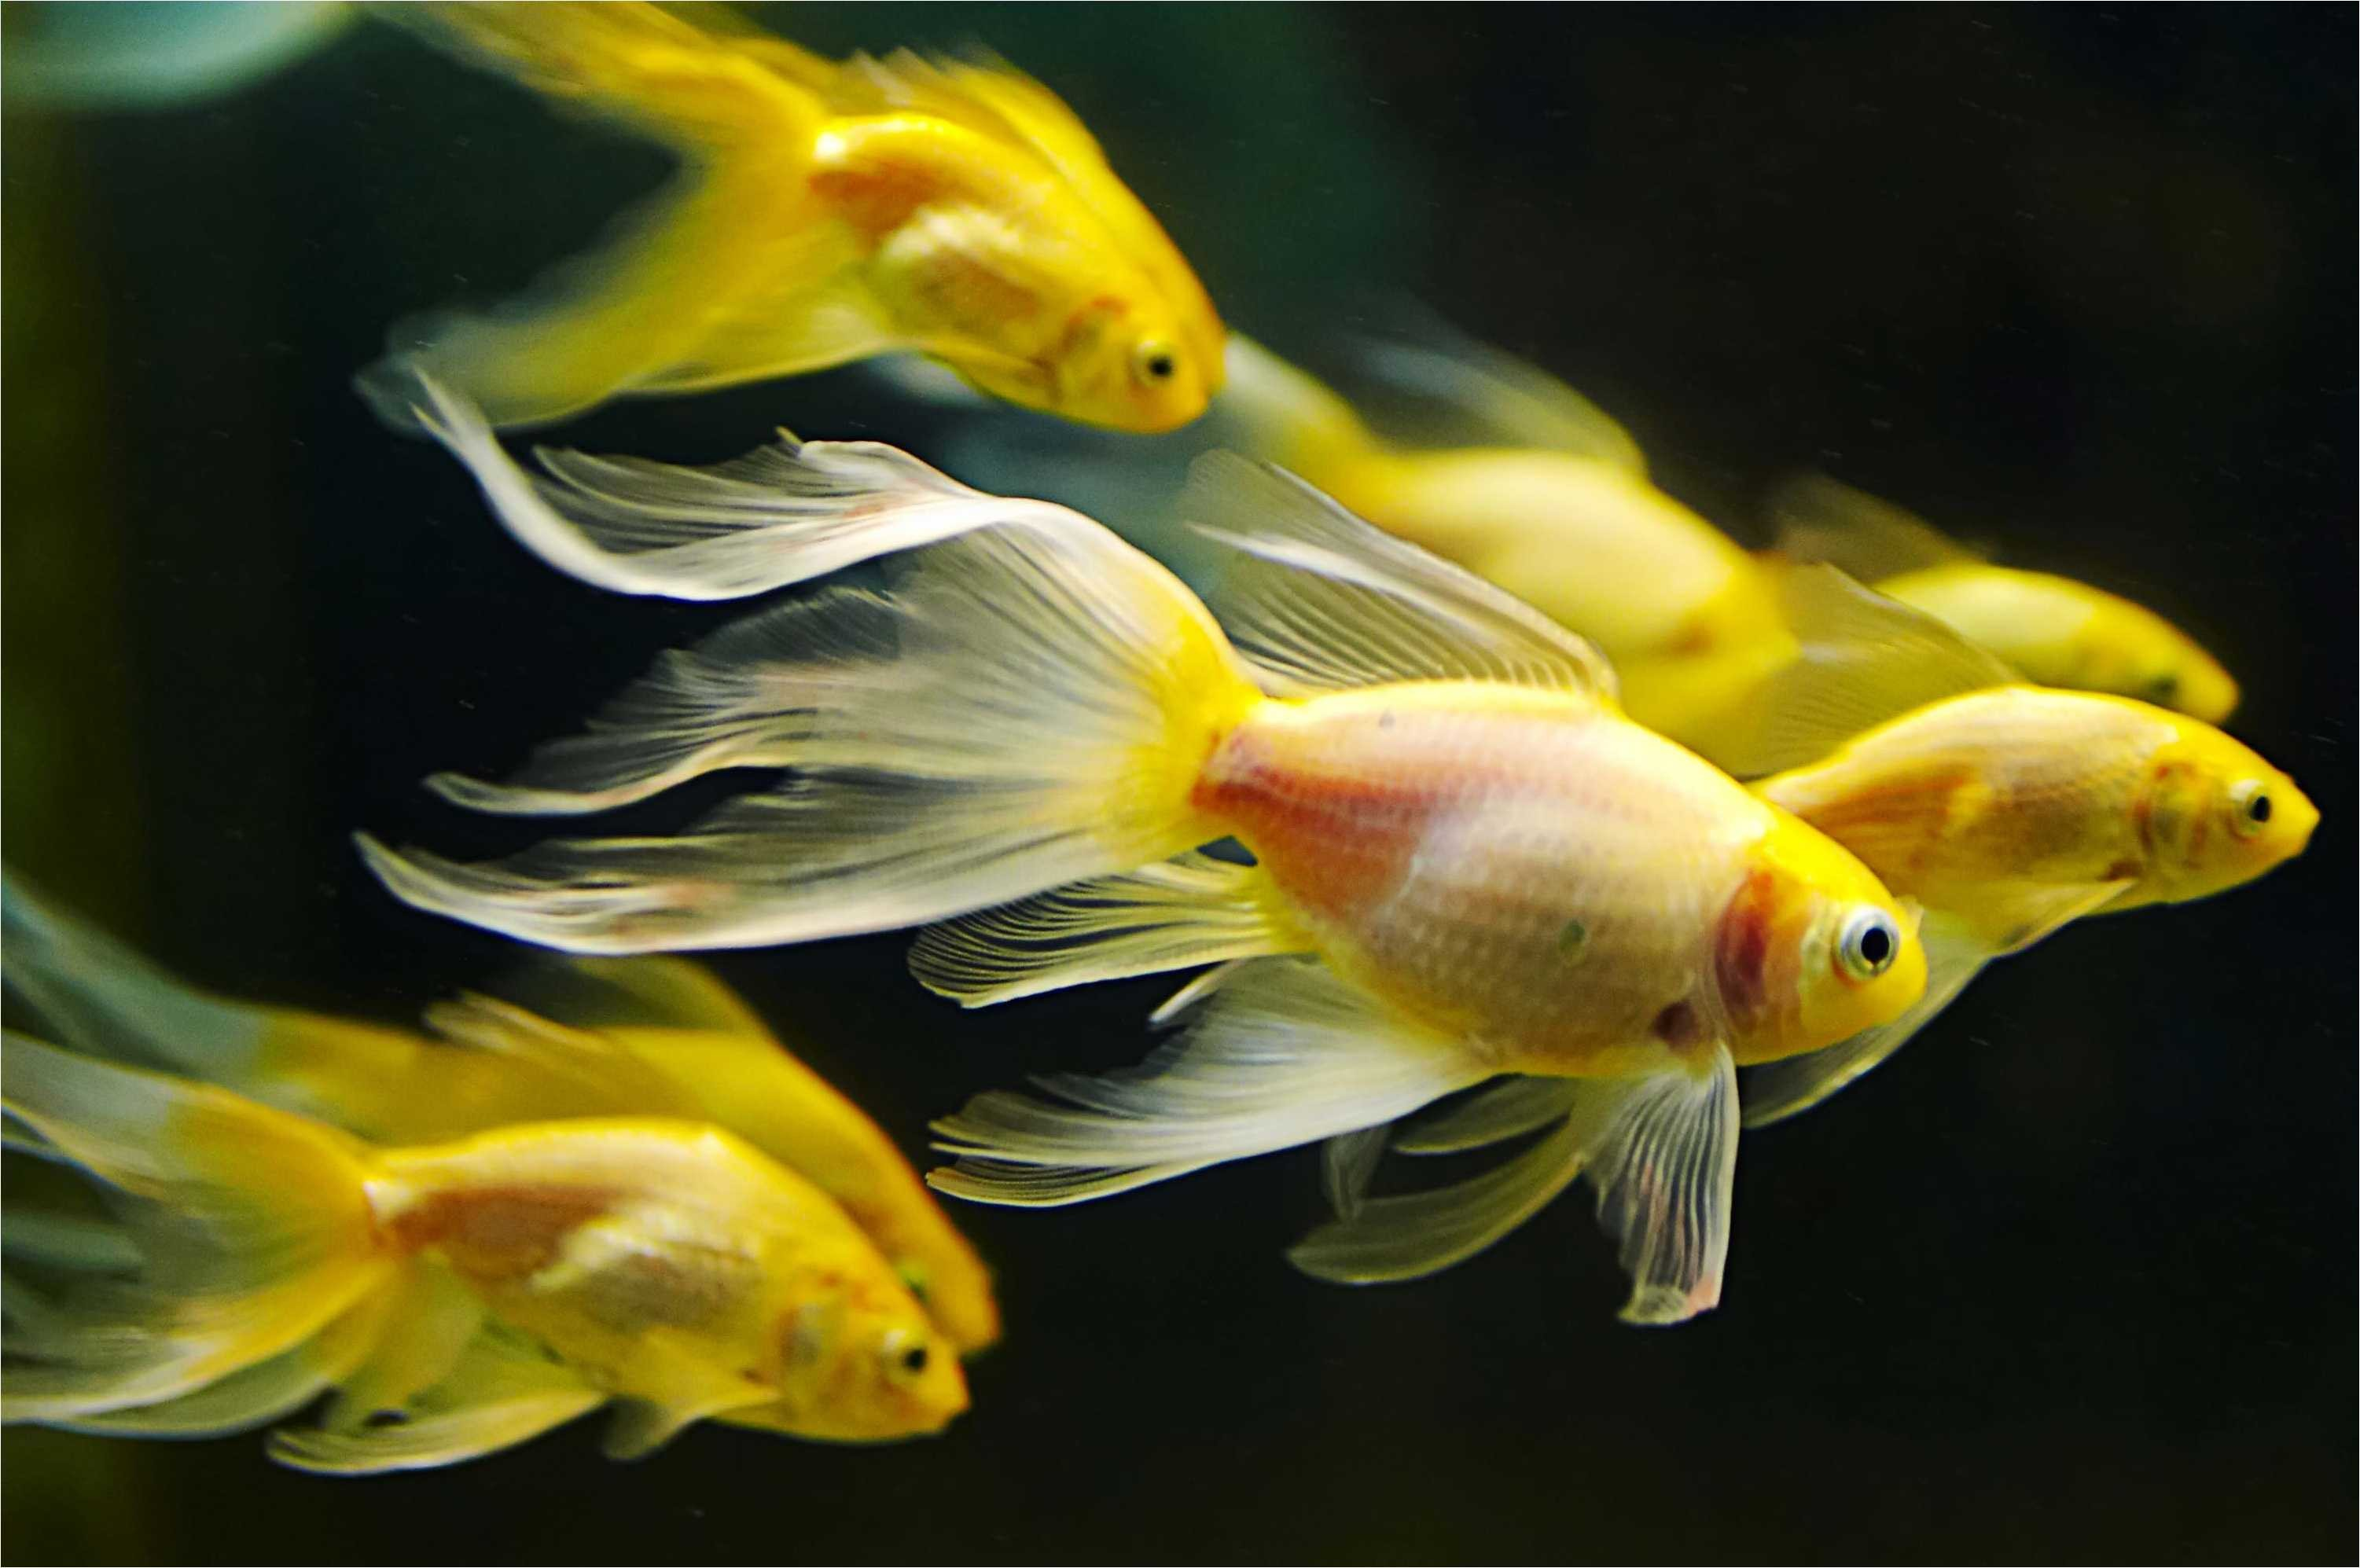 Res: 3002x1995, Awesome Goldfish HD Wallpaper Pack 871 | Free Download